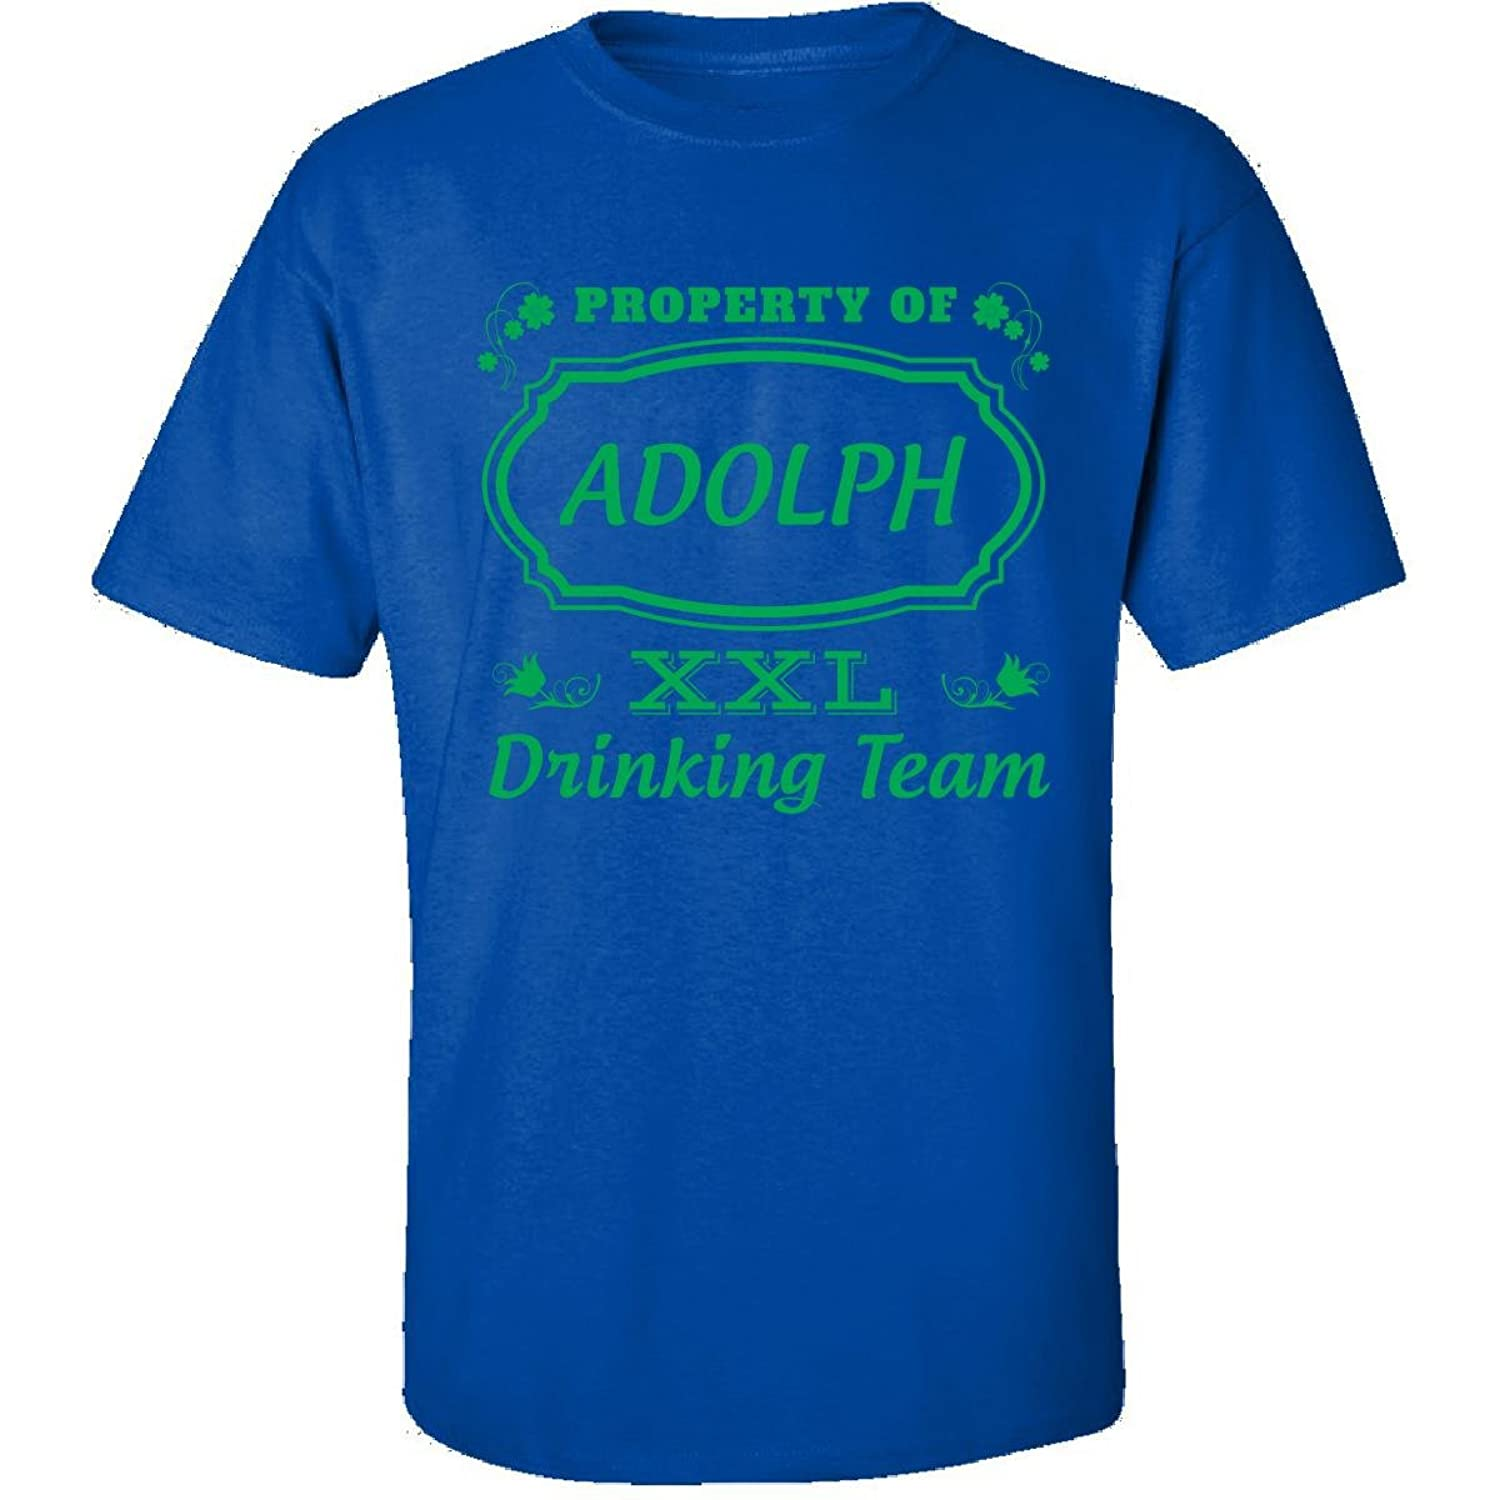 Property Of Adolph St Patrick Day Beer Drinking Team - Adult Shirt